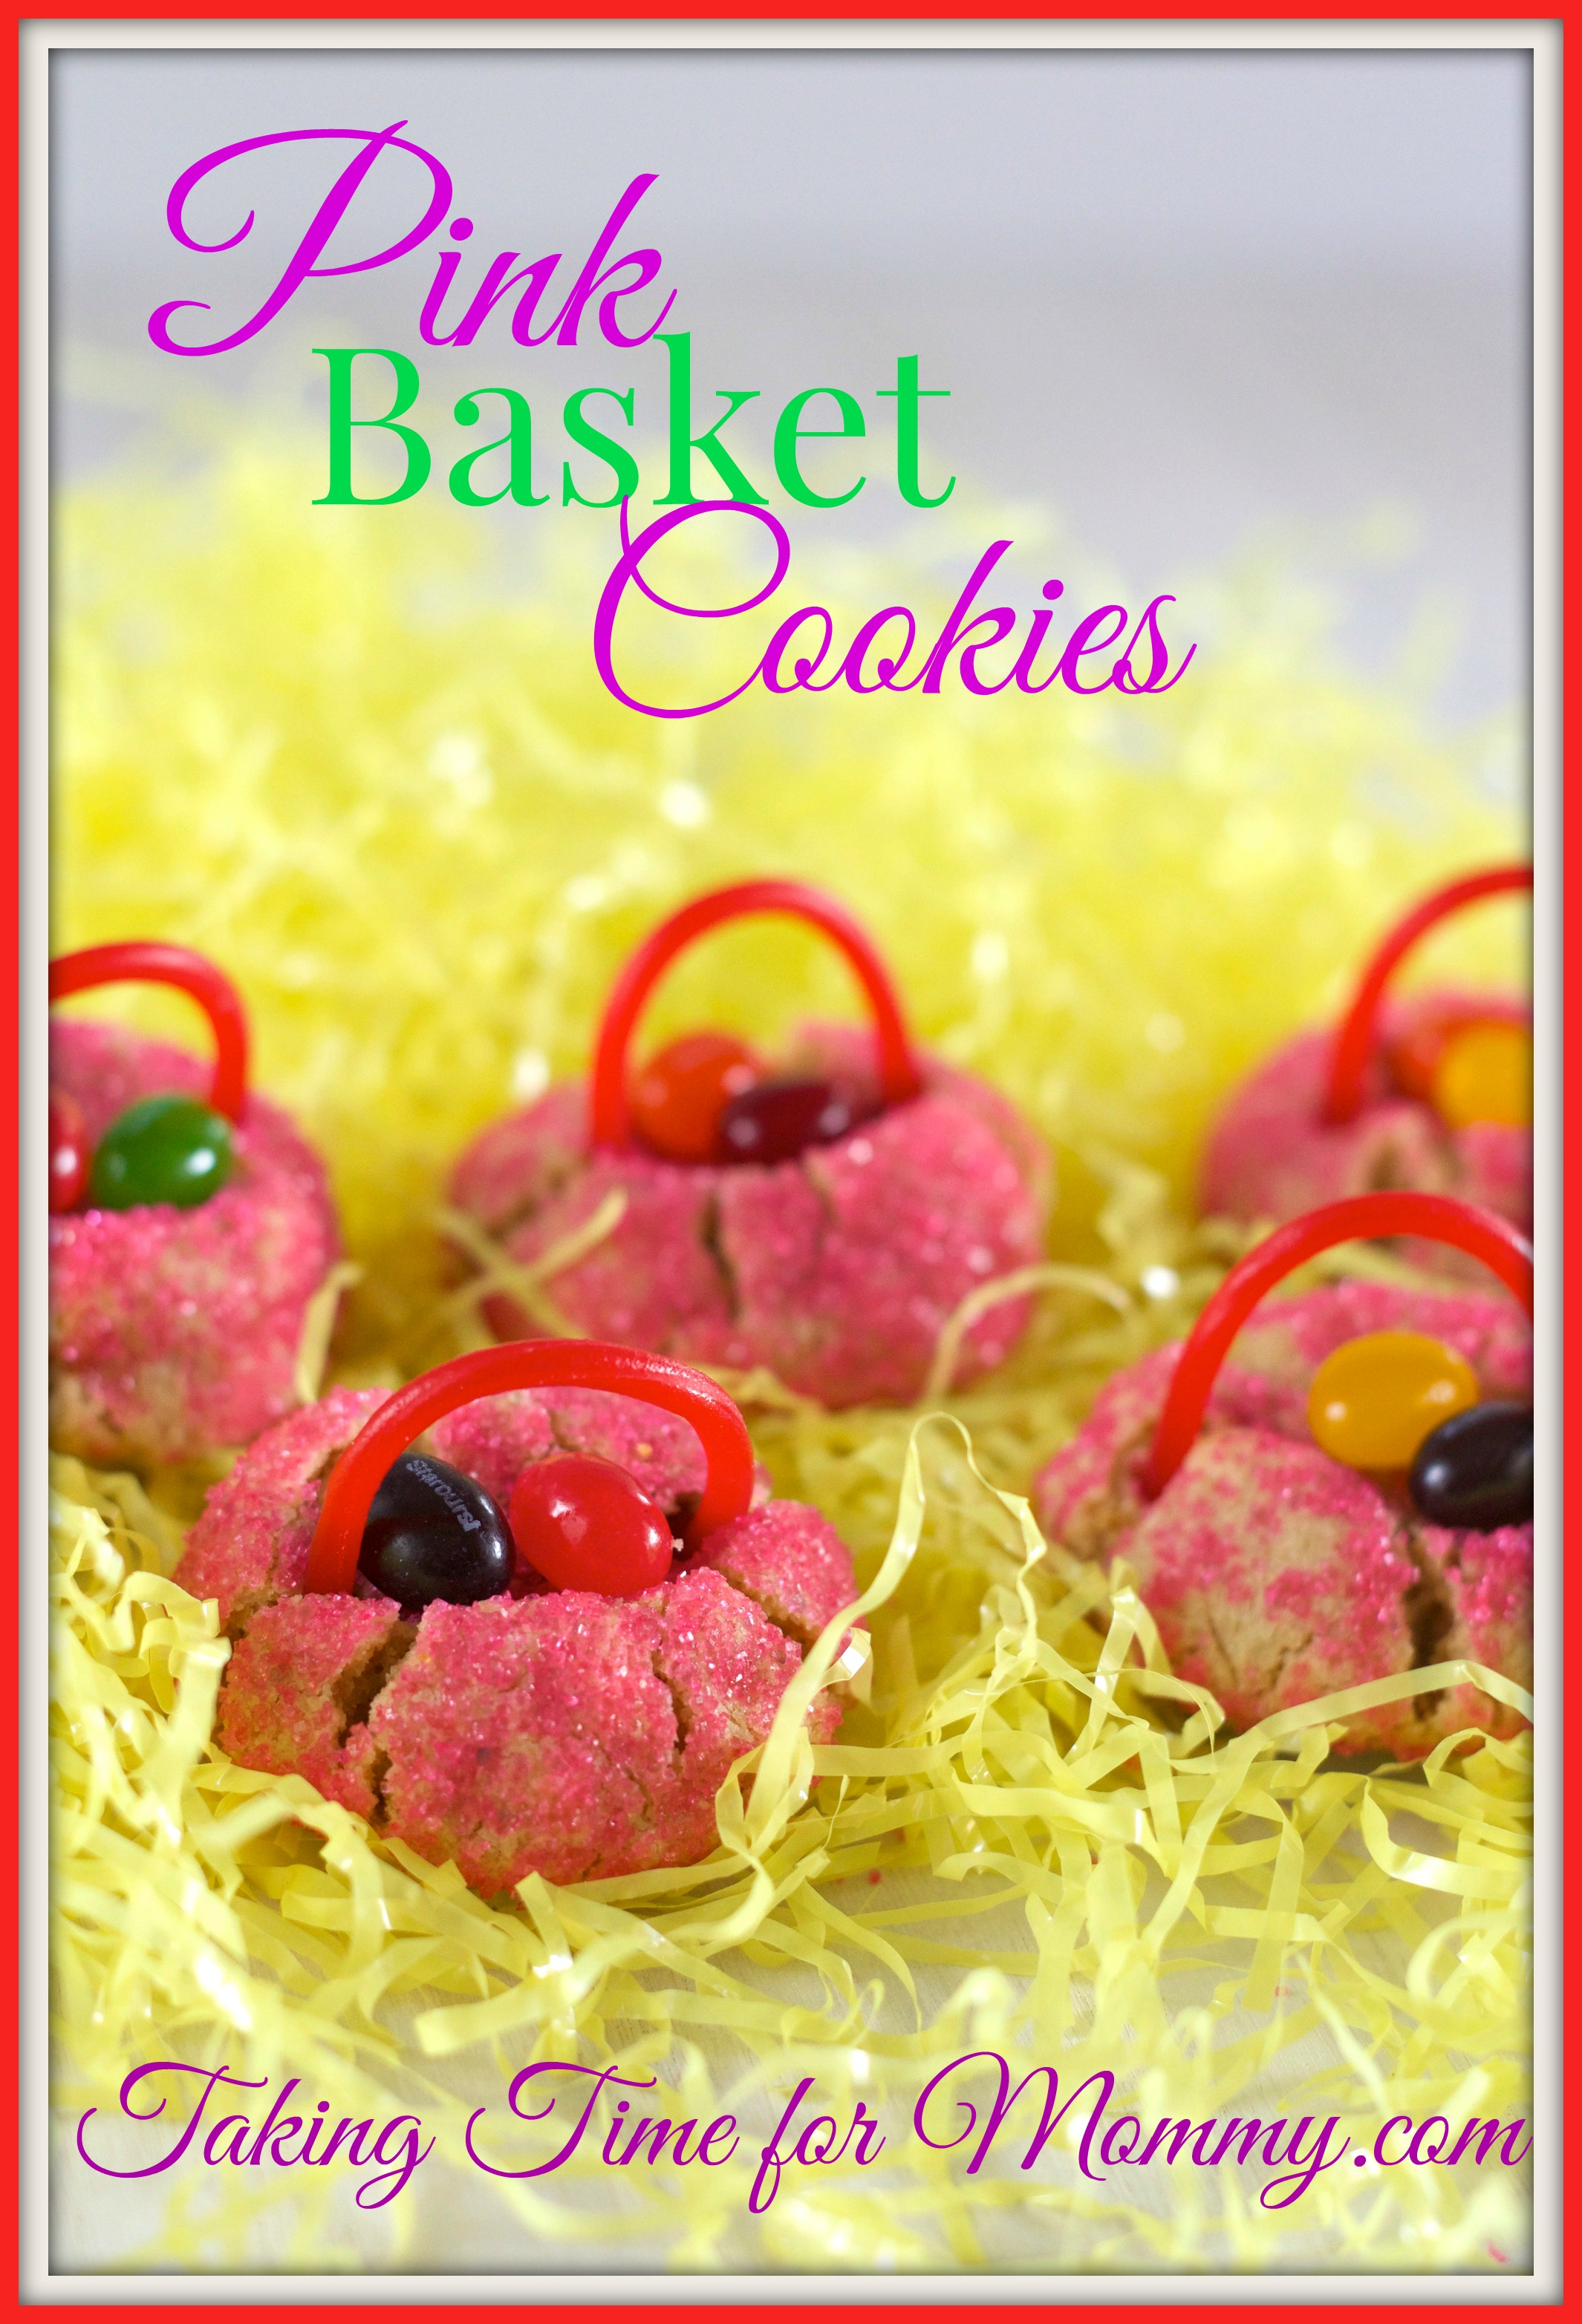 PinkBasketCookies